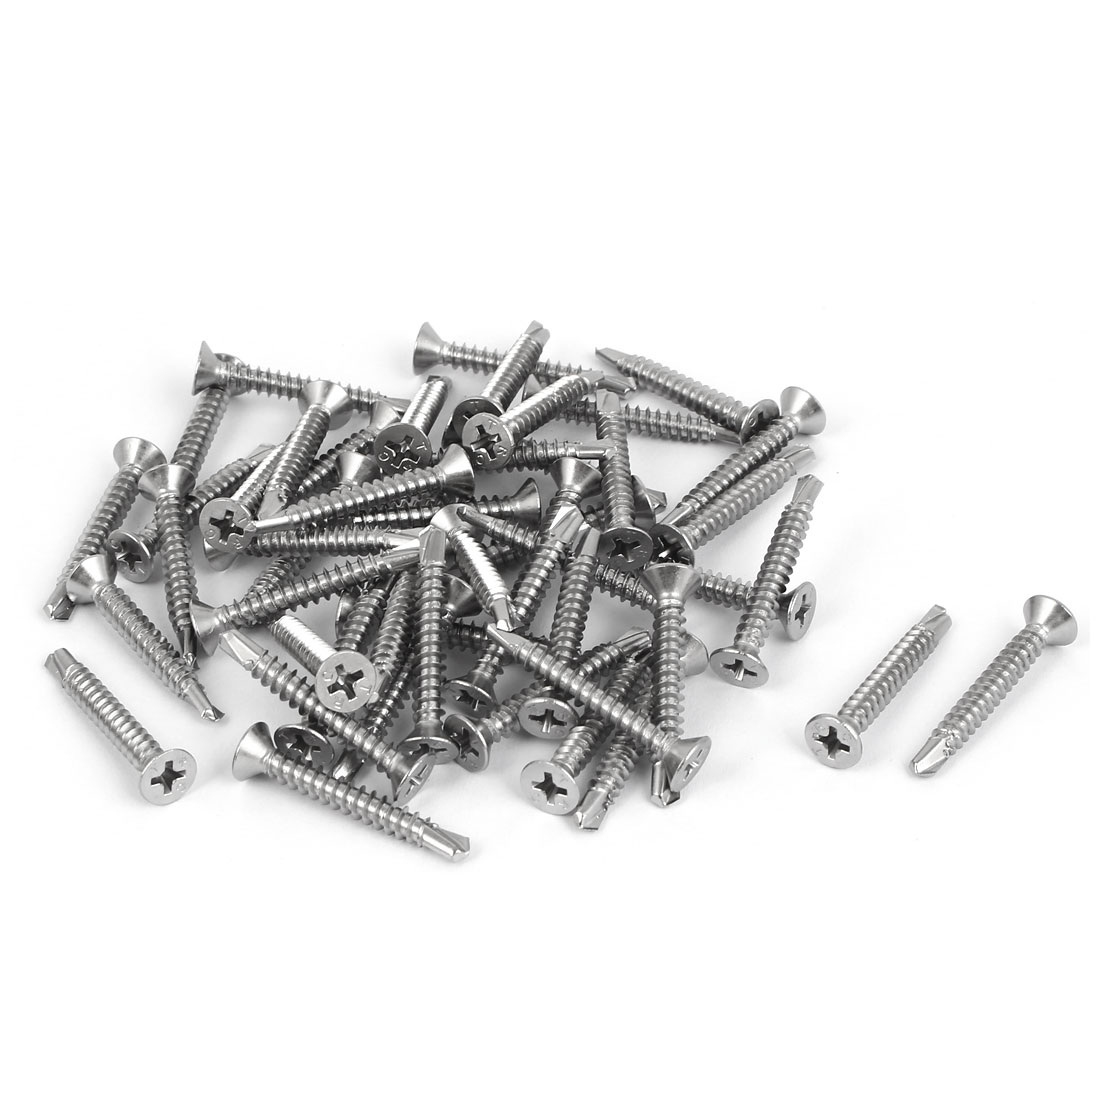 M4.2x32mm #8 Stainless Steel Self Drilling Countersunk Phillips Head Screw 50pcs